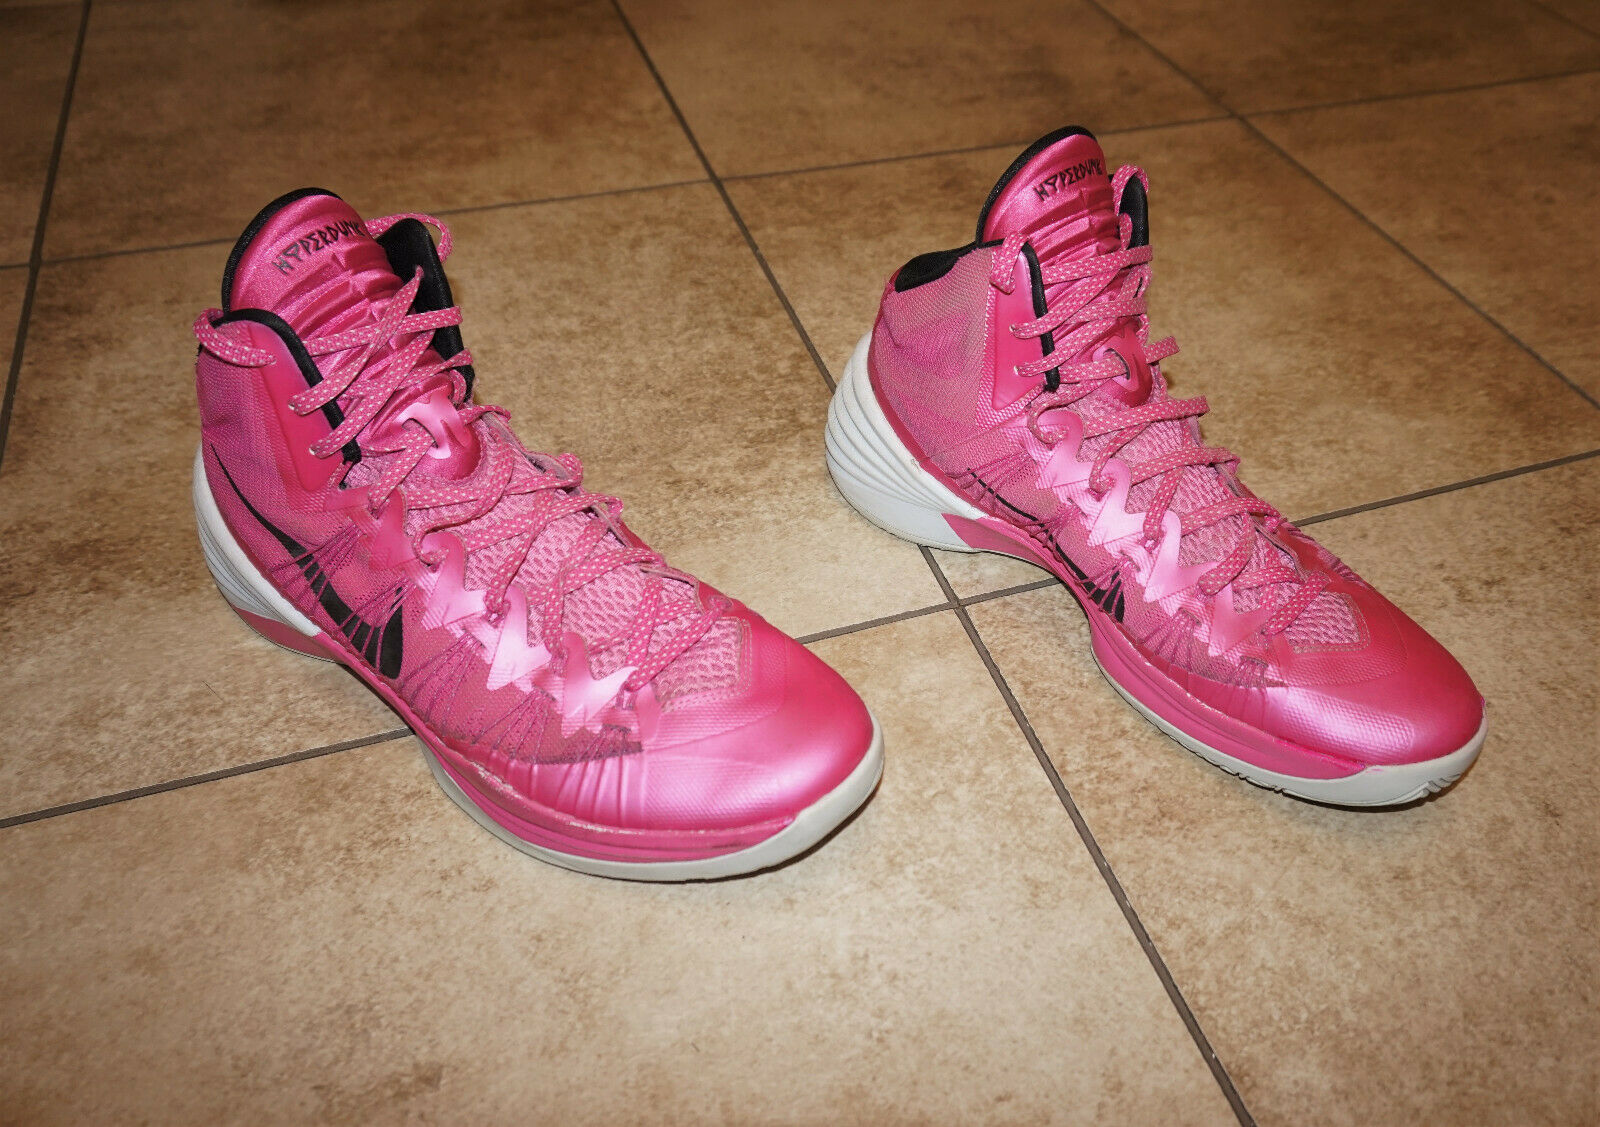 Nike Zoom Hyperdunk Breast Cancer Aware Pinkfire Men's Basketball shoes Size 12